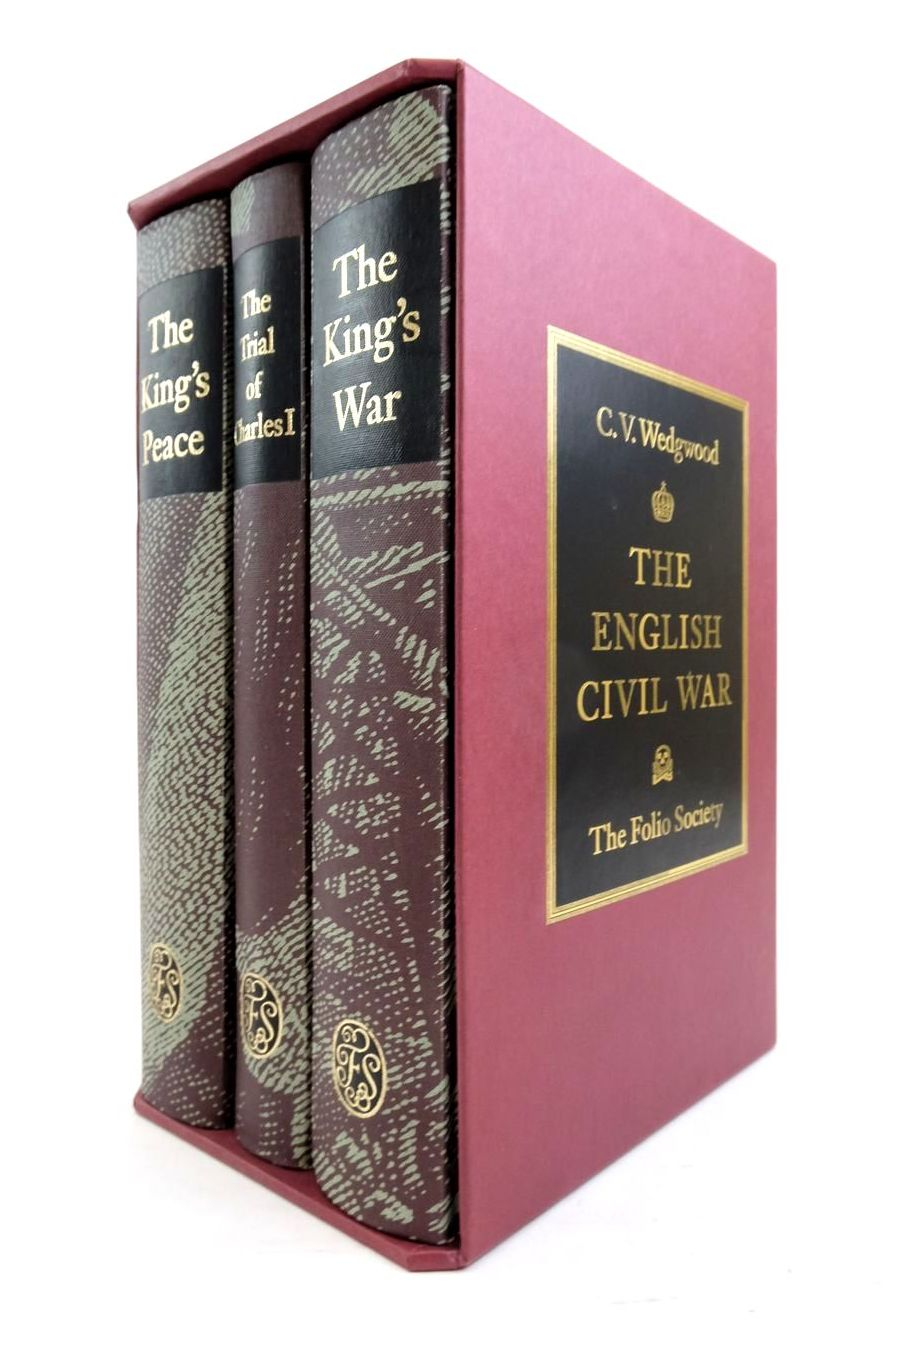 Photo of THE ENGLISH CIVIL WAR (3 VOLUMES) written by Wedgwood, C.V. published by Folio Society (STOCK CODE: 1821476)  for sale by Stella & Rose's Books